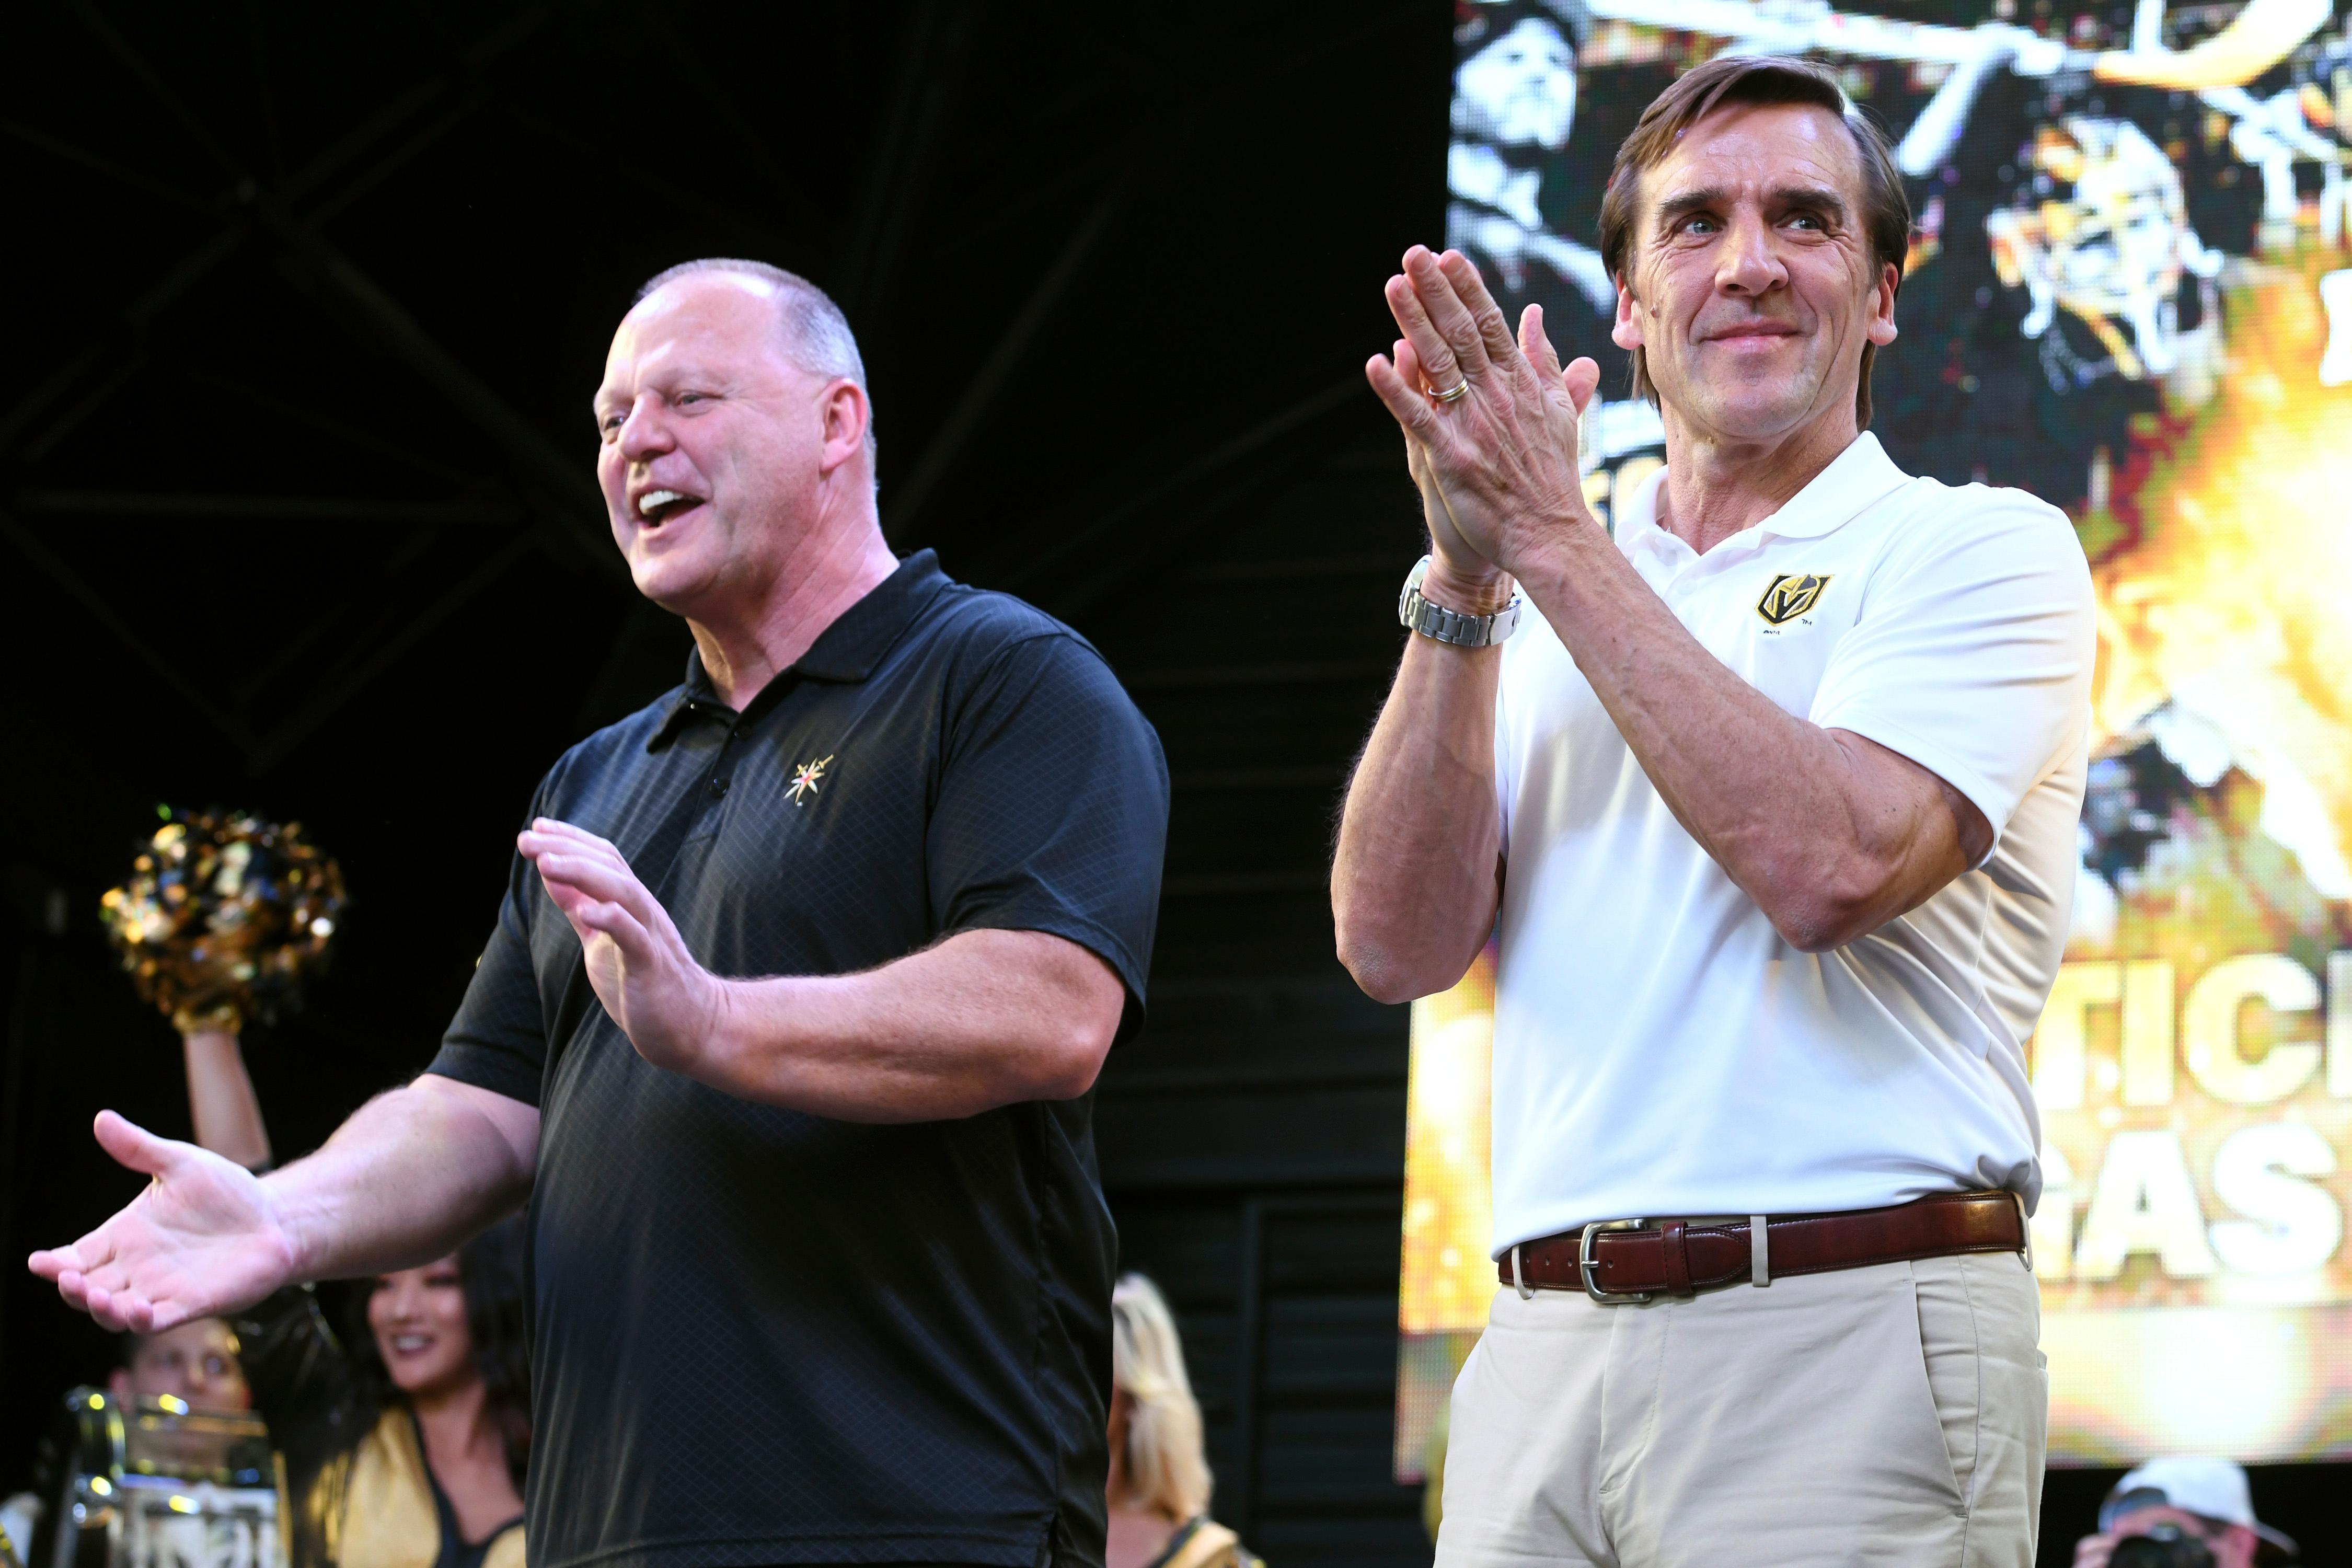 Vegas Golden Knights head coach Gerard Gallant and general manager George McPhee applaud the crowd during a Vegas Golden Knights Stick Salute to Vegas fan appreciation rally at the Fremont Street Experience Wednesday, June 13, 2018. CREDIT: Sam Morris/Las Vegas News Bureau